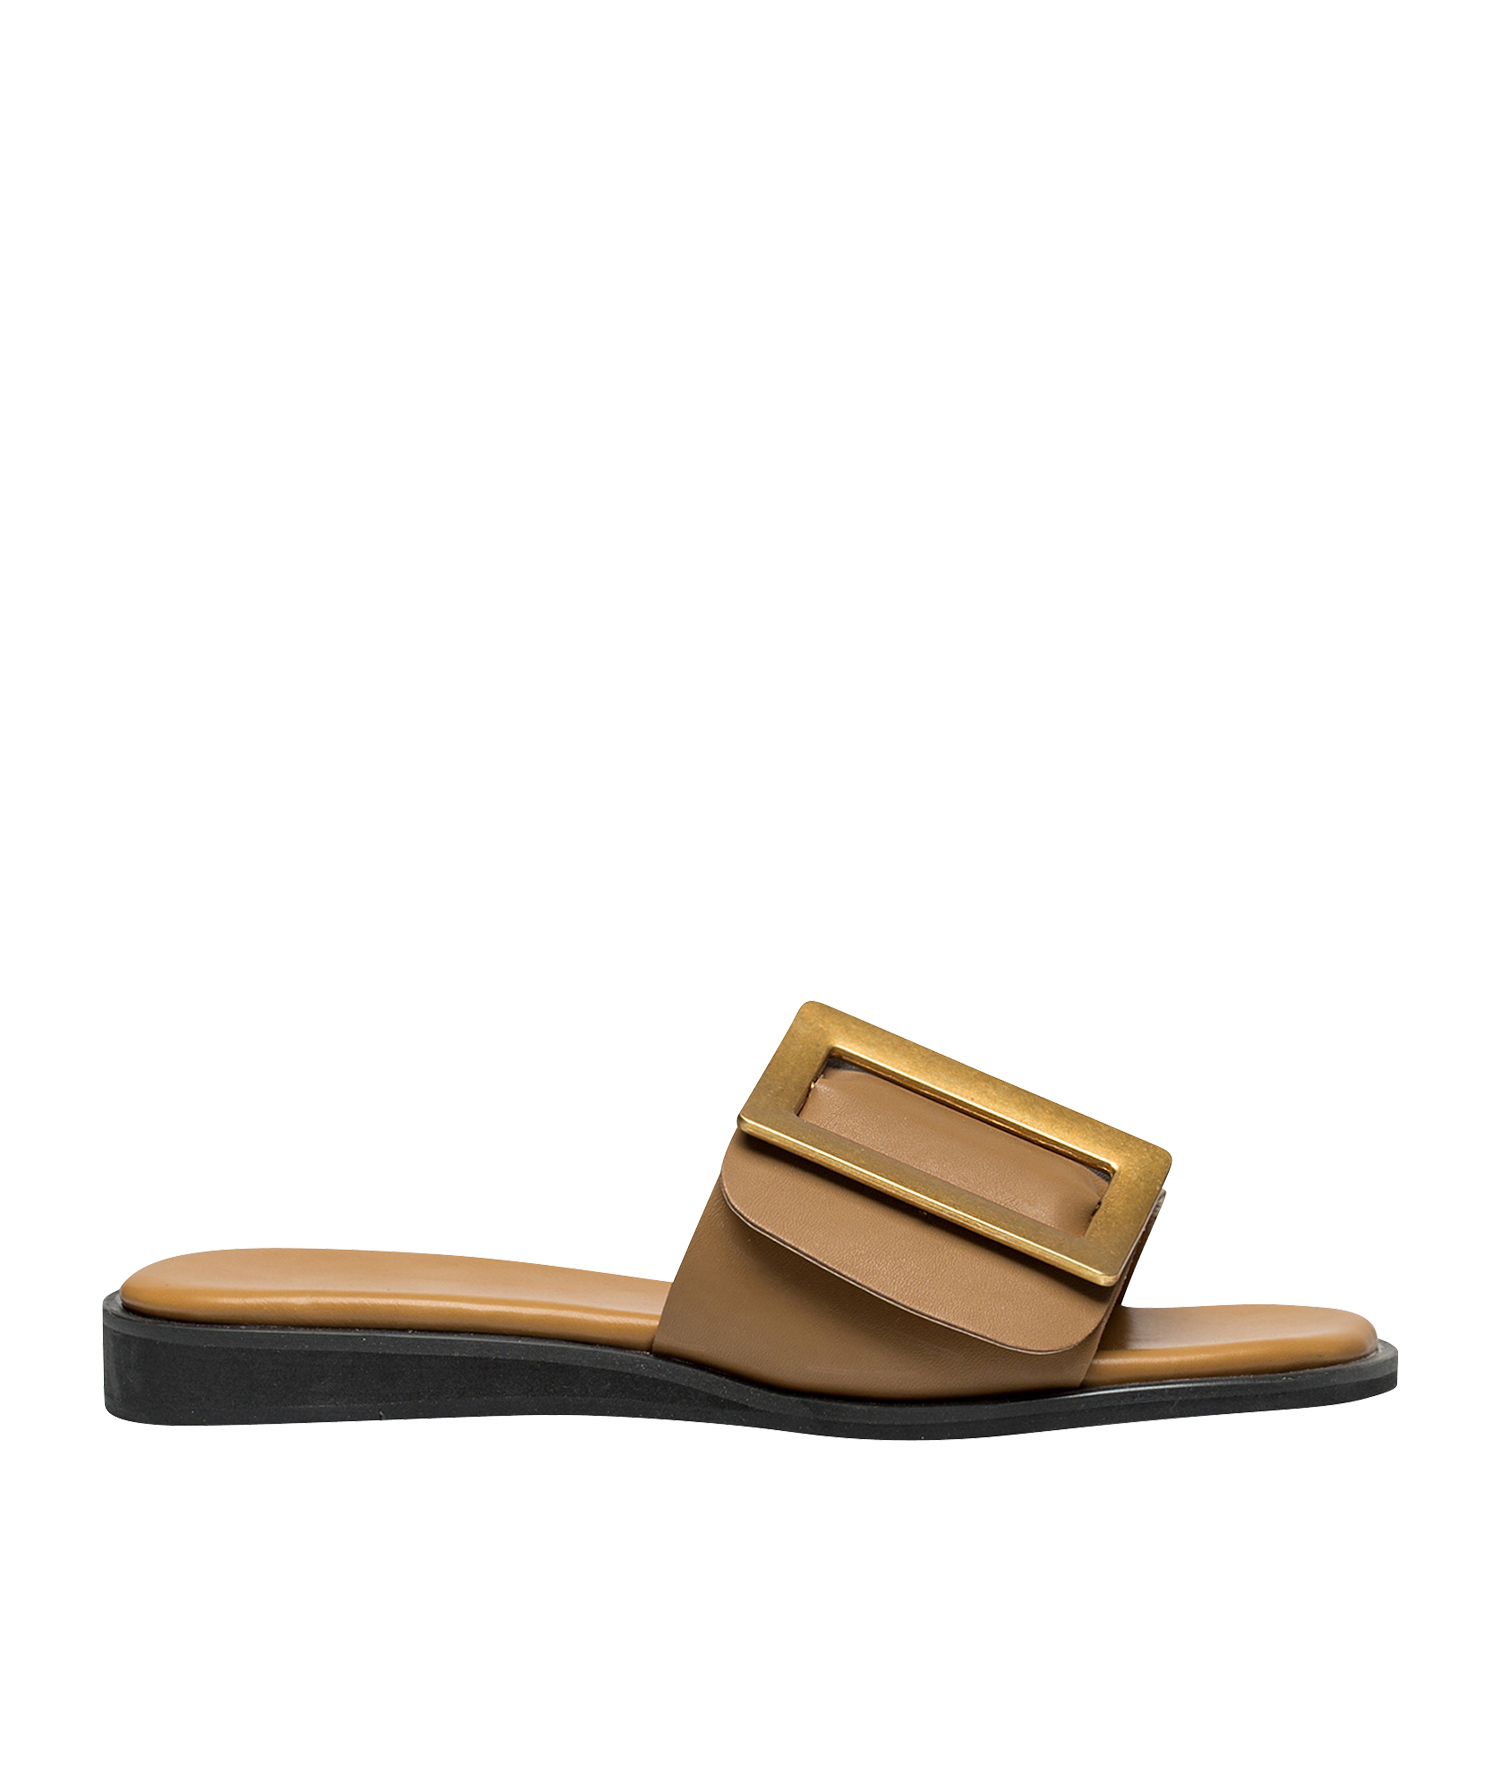 8d6f0406d50 AnnaKastle Womens Square Buckle Flat Slide Sandals LightBrown